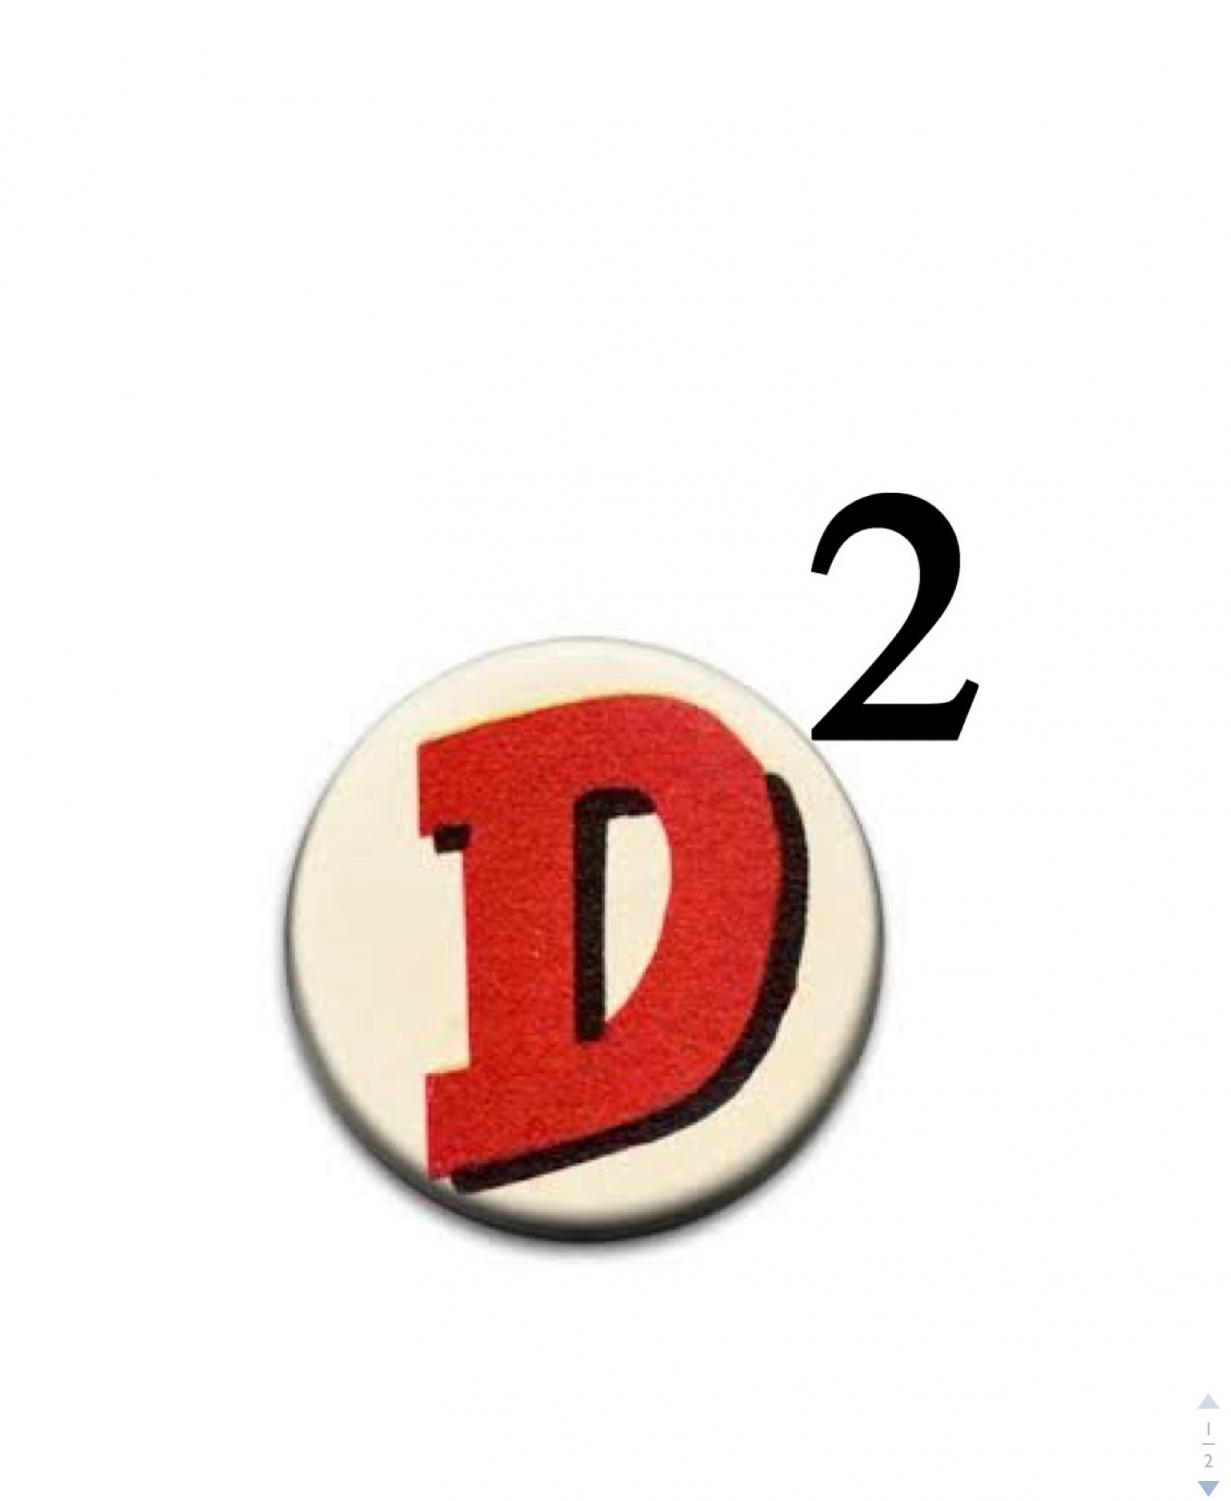 D Squared Podcast cover